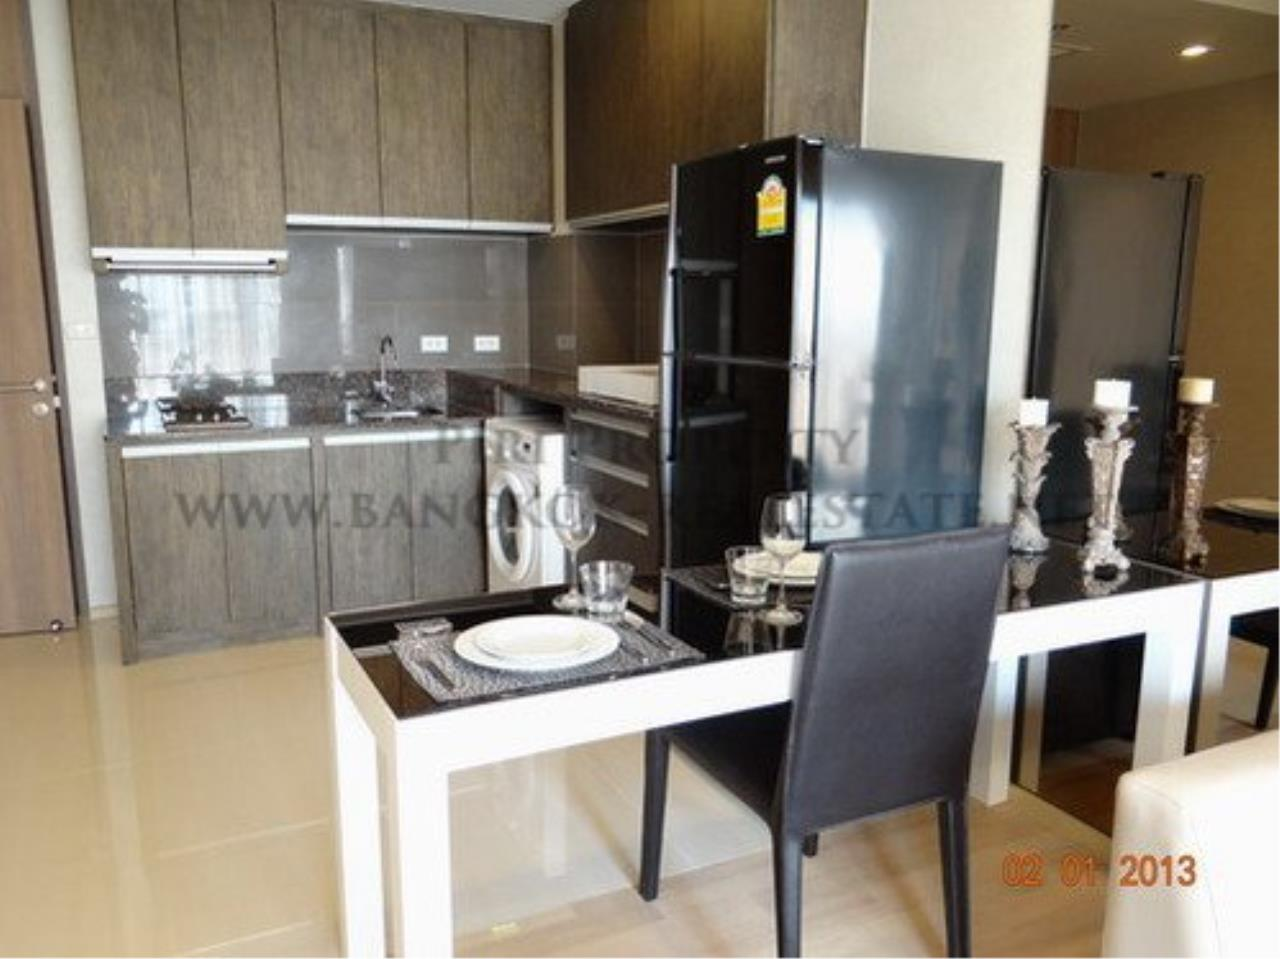 Piri Property Agency's 1 Bed - Noble Refine - Fully furnished for Rent near the Emporium 3